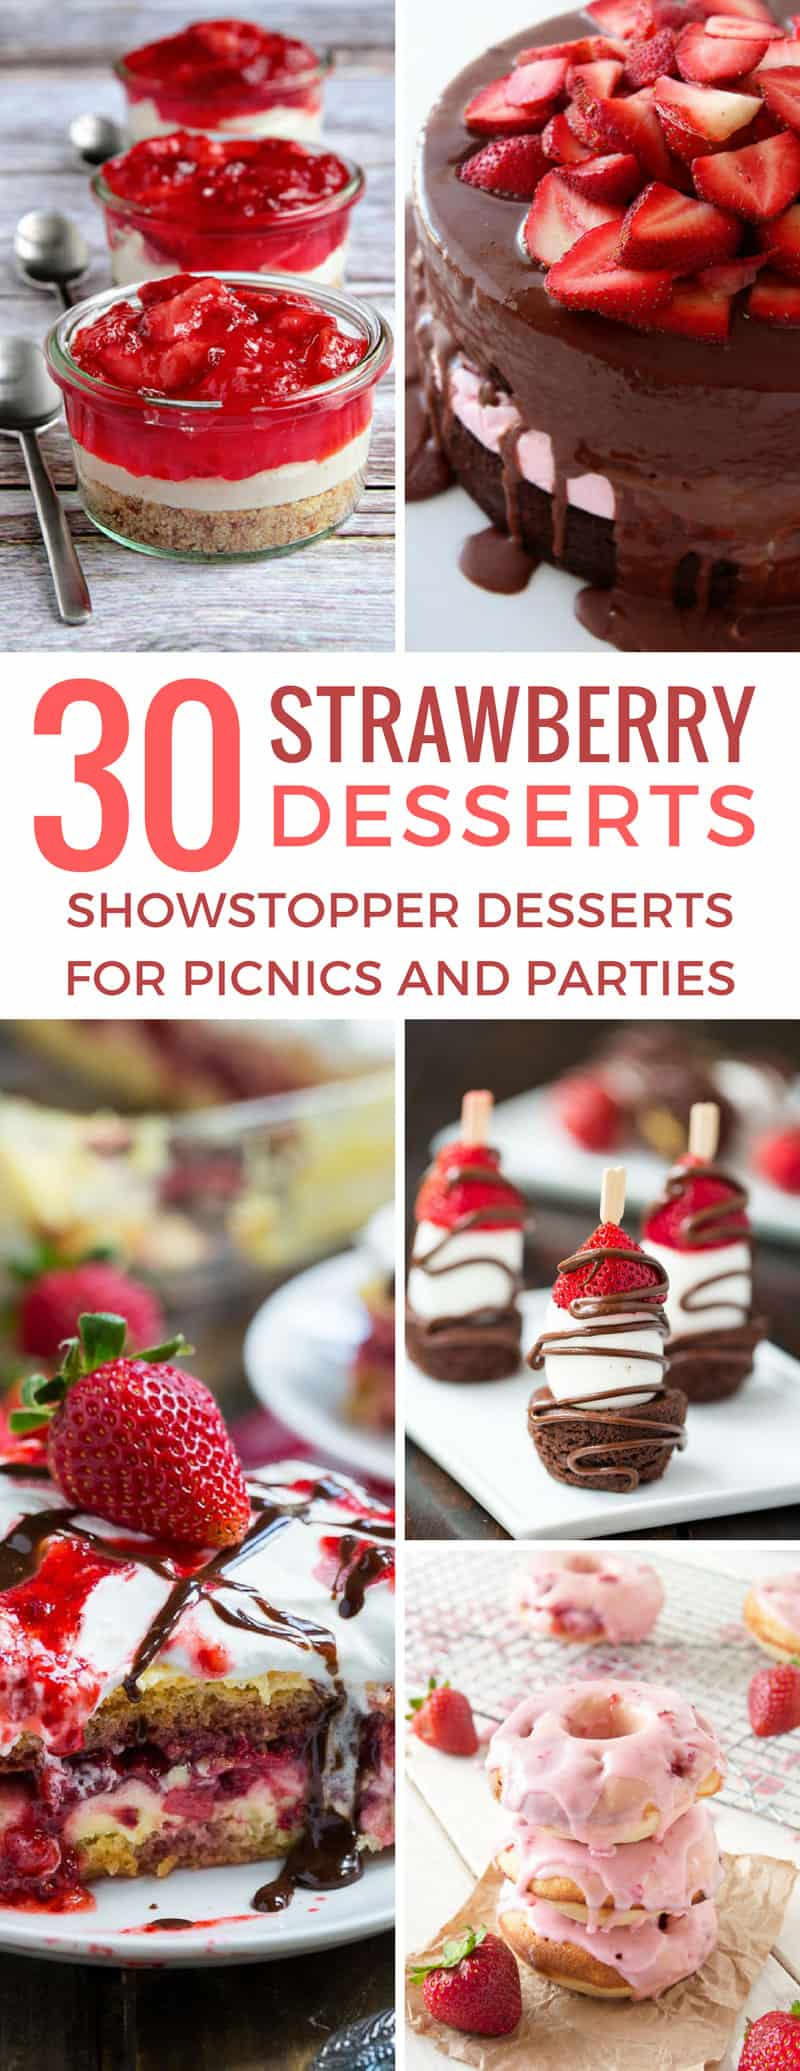 Oh my these fresh strawberry desserts taste amazing! Thanks for sharing!